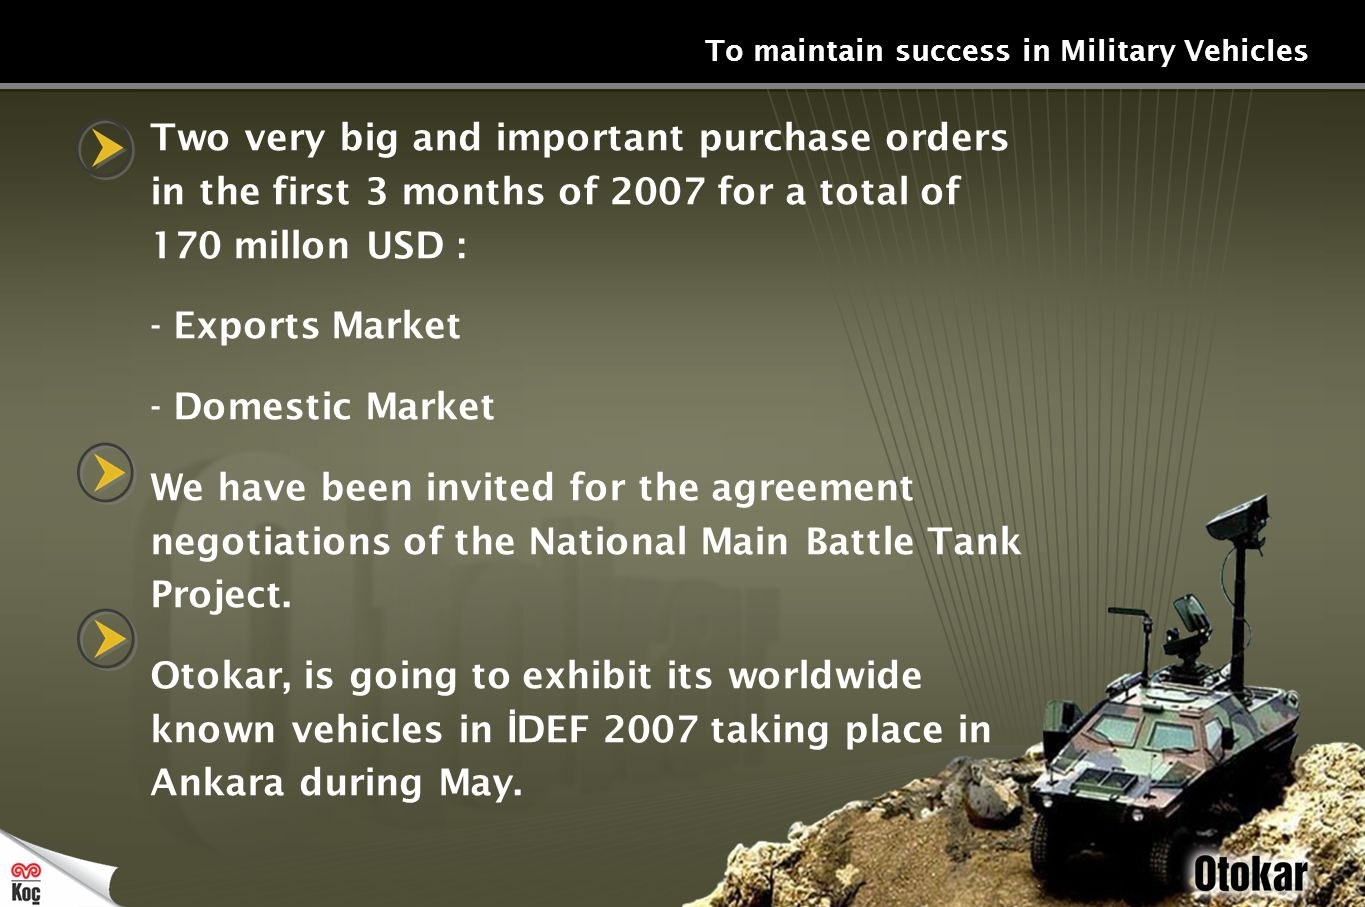 To maintain success in Military Vehicles Two very big and important purchase orders in the first 3 months of 2007 for a total of 170 millon USD : - Exports Market - Domestic Market We have been invited for the agreement negotiations of the National Main Battle Tank Project.